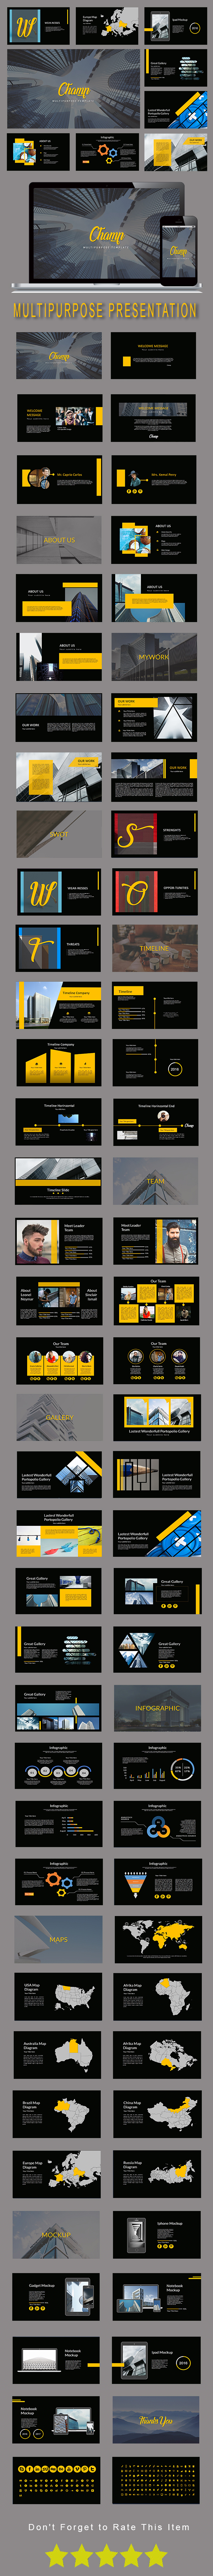 Champ Multipurpose Keynote Template - Keynote Templates Presentation Templates